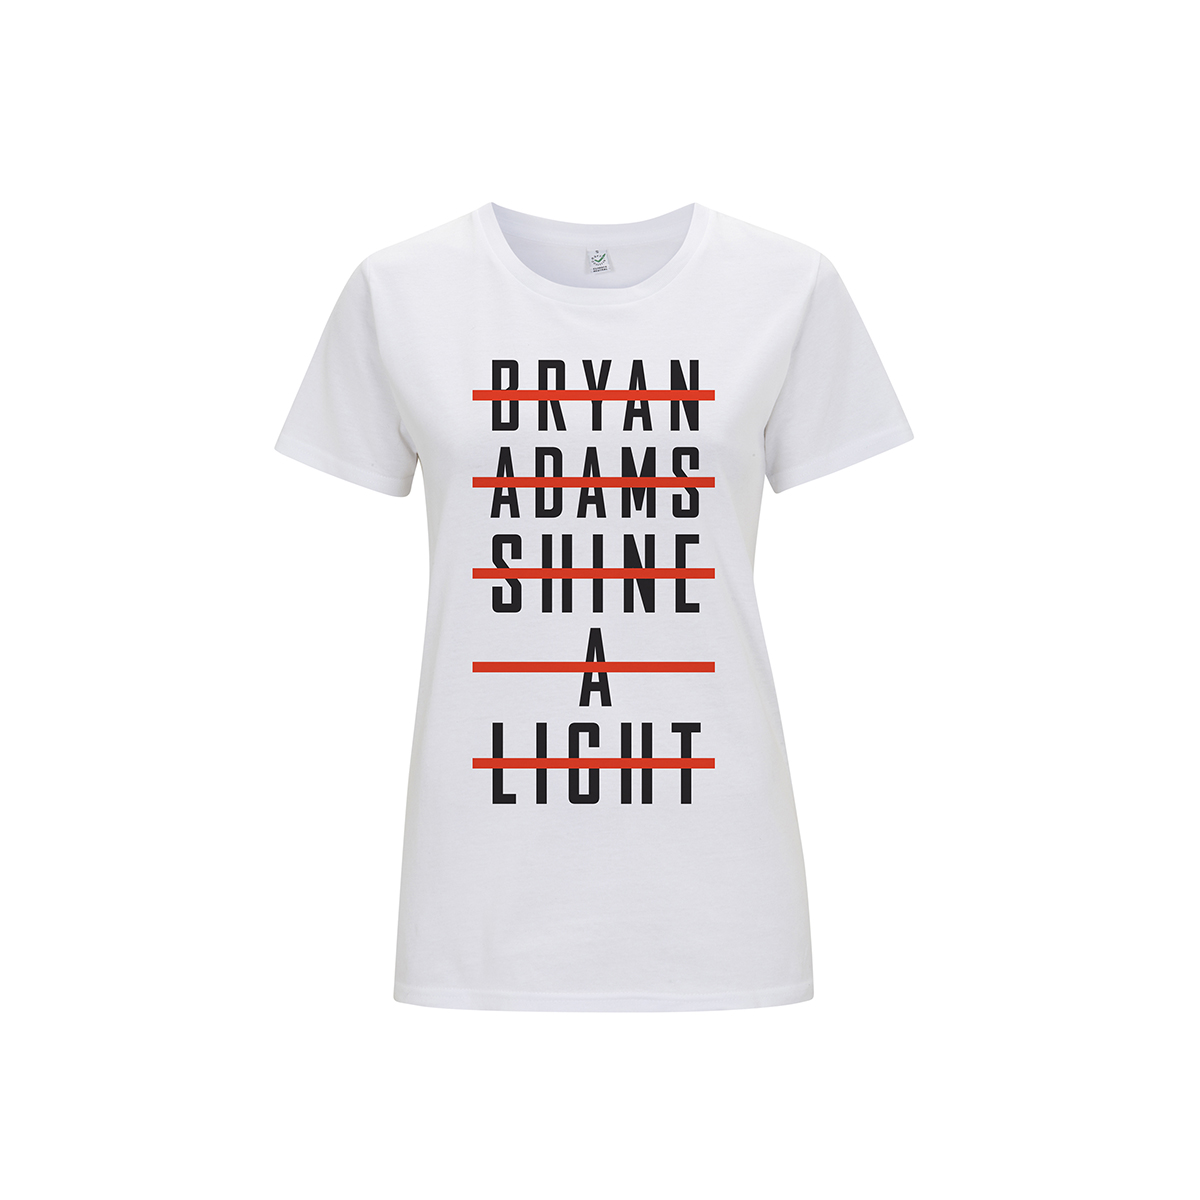 Stacked Type Logo -  Ladies White Tee - Bryan Adams